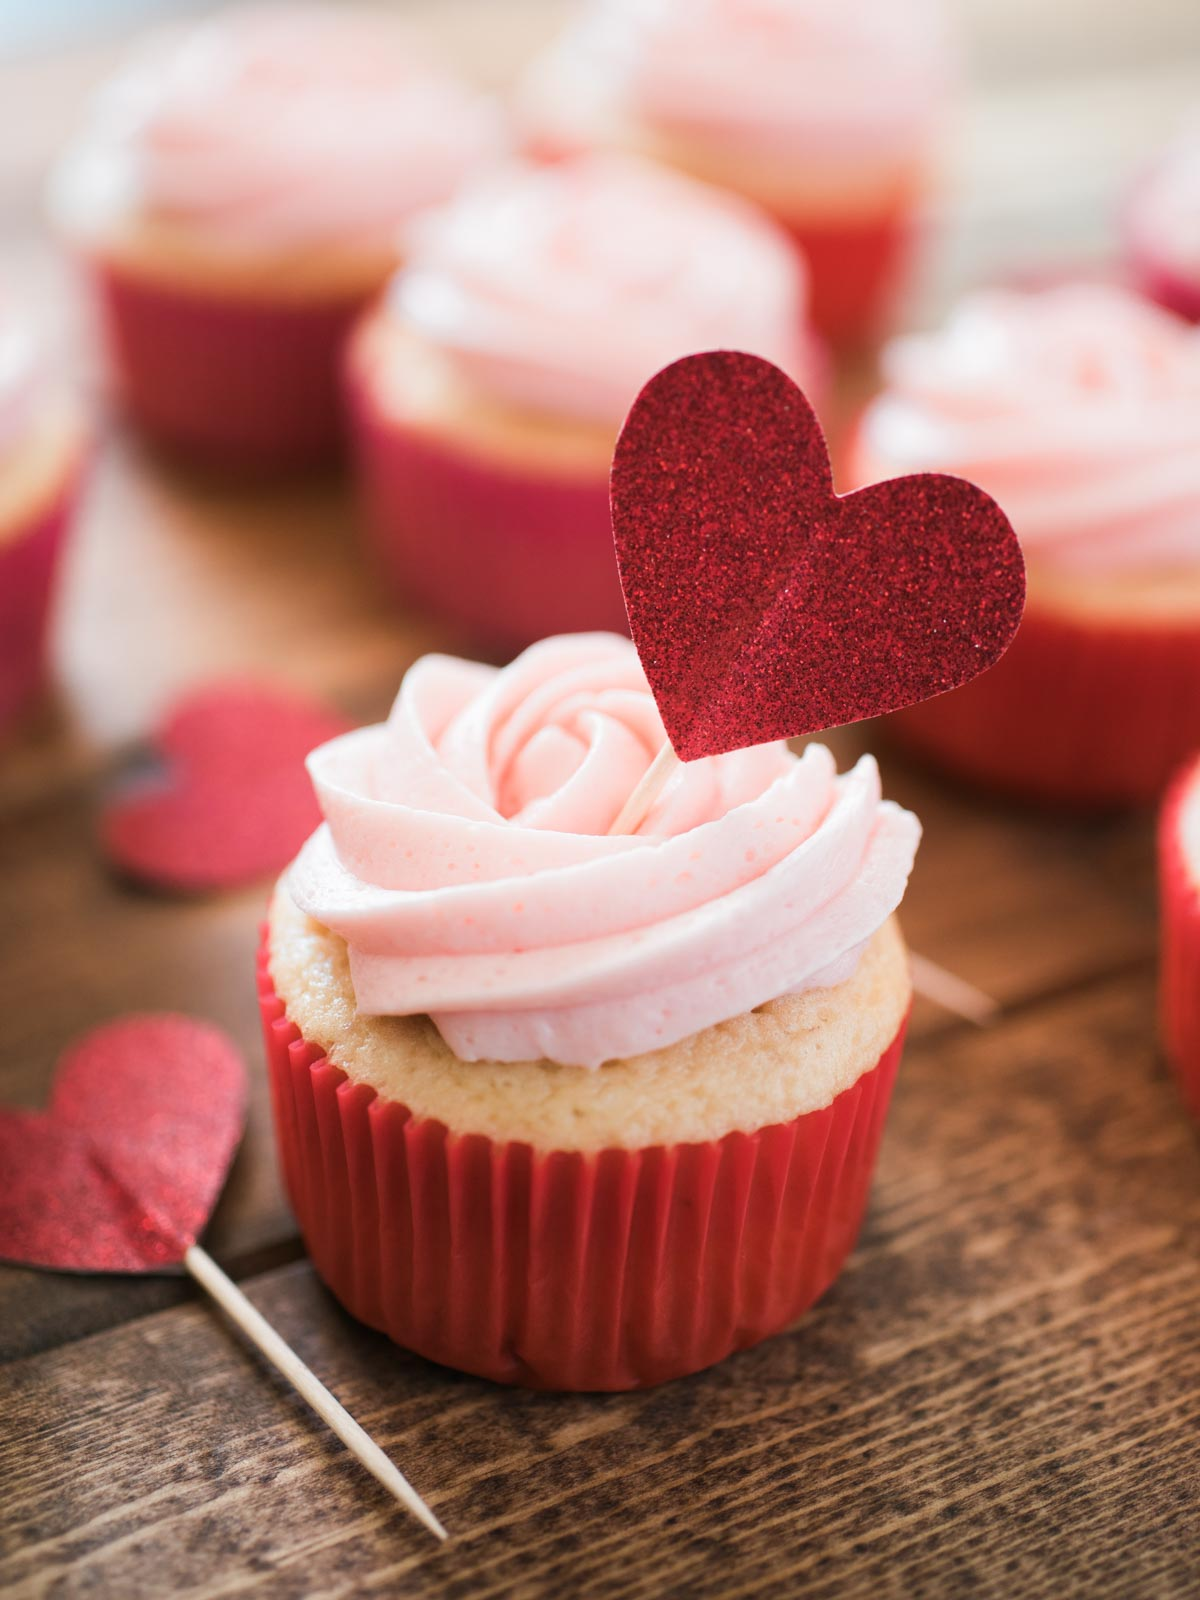 cupcake with a heart topper